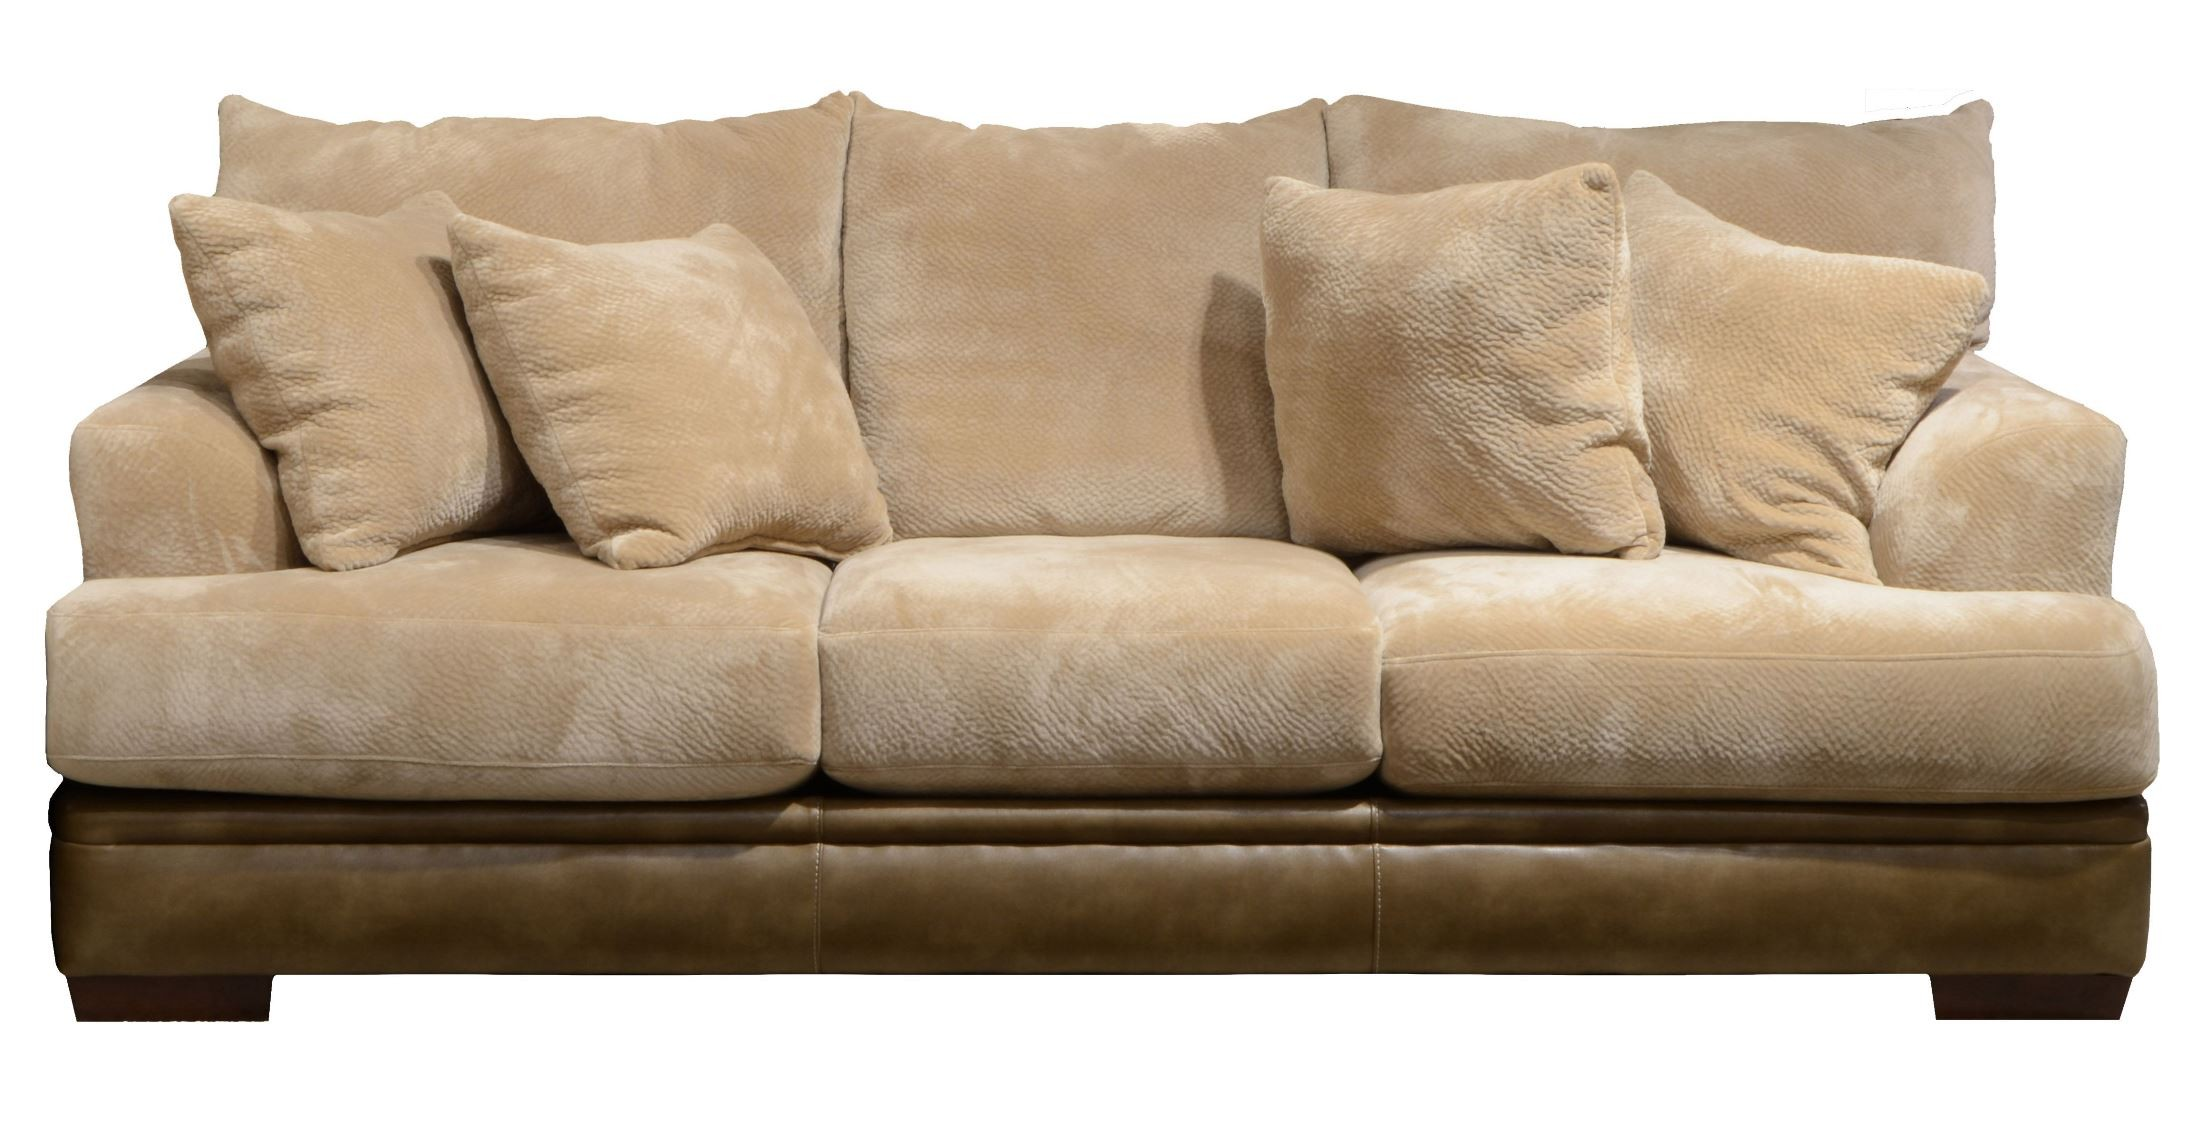 barkley toast sectional from jackson coleman furniture